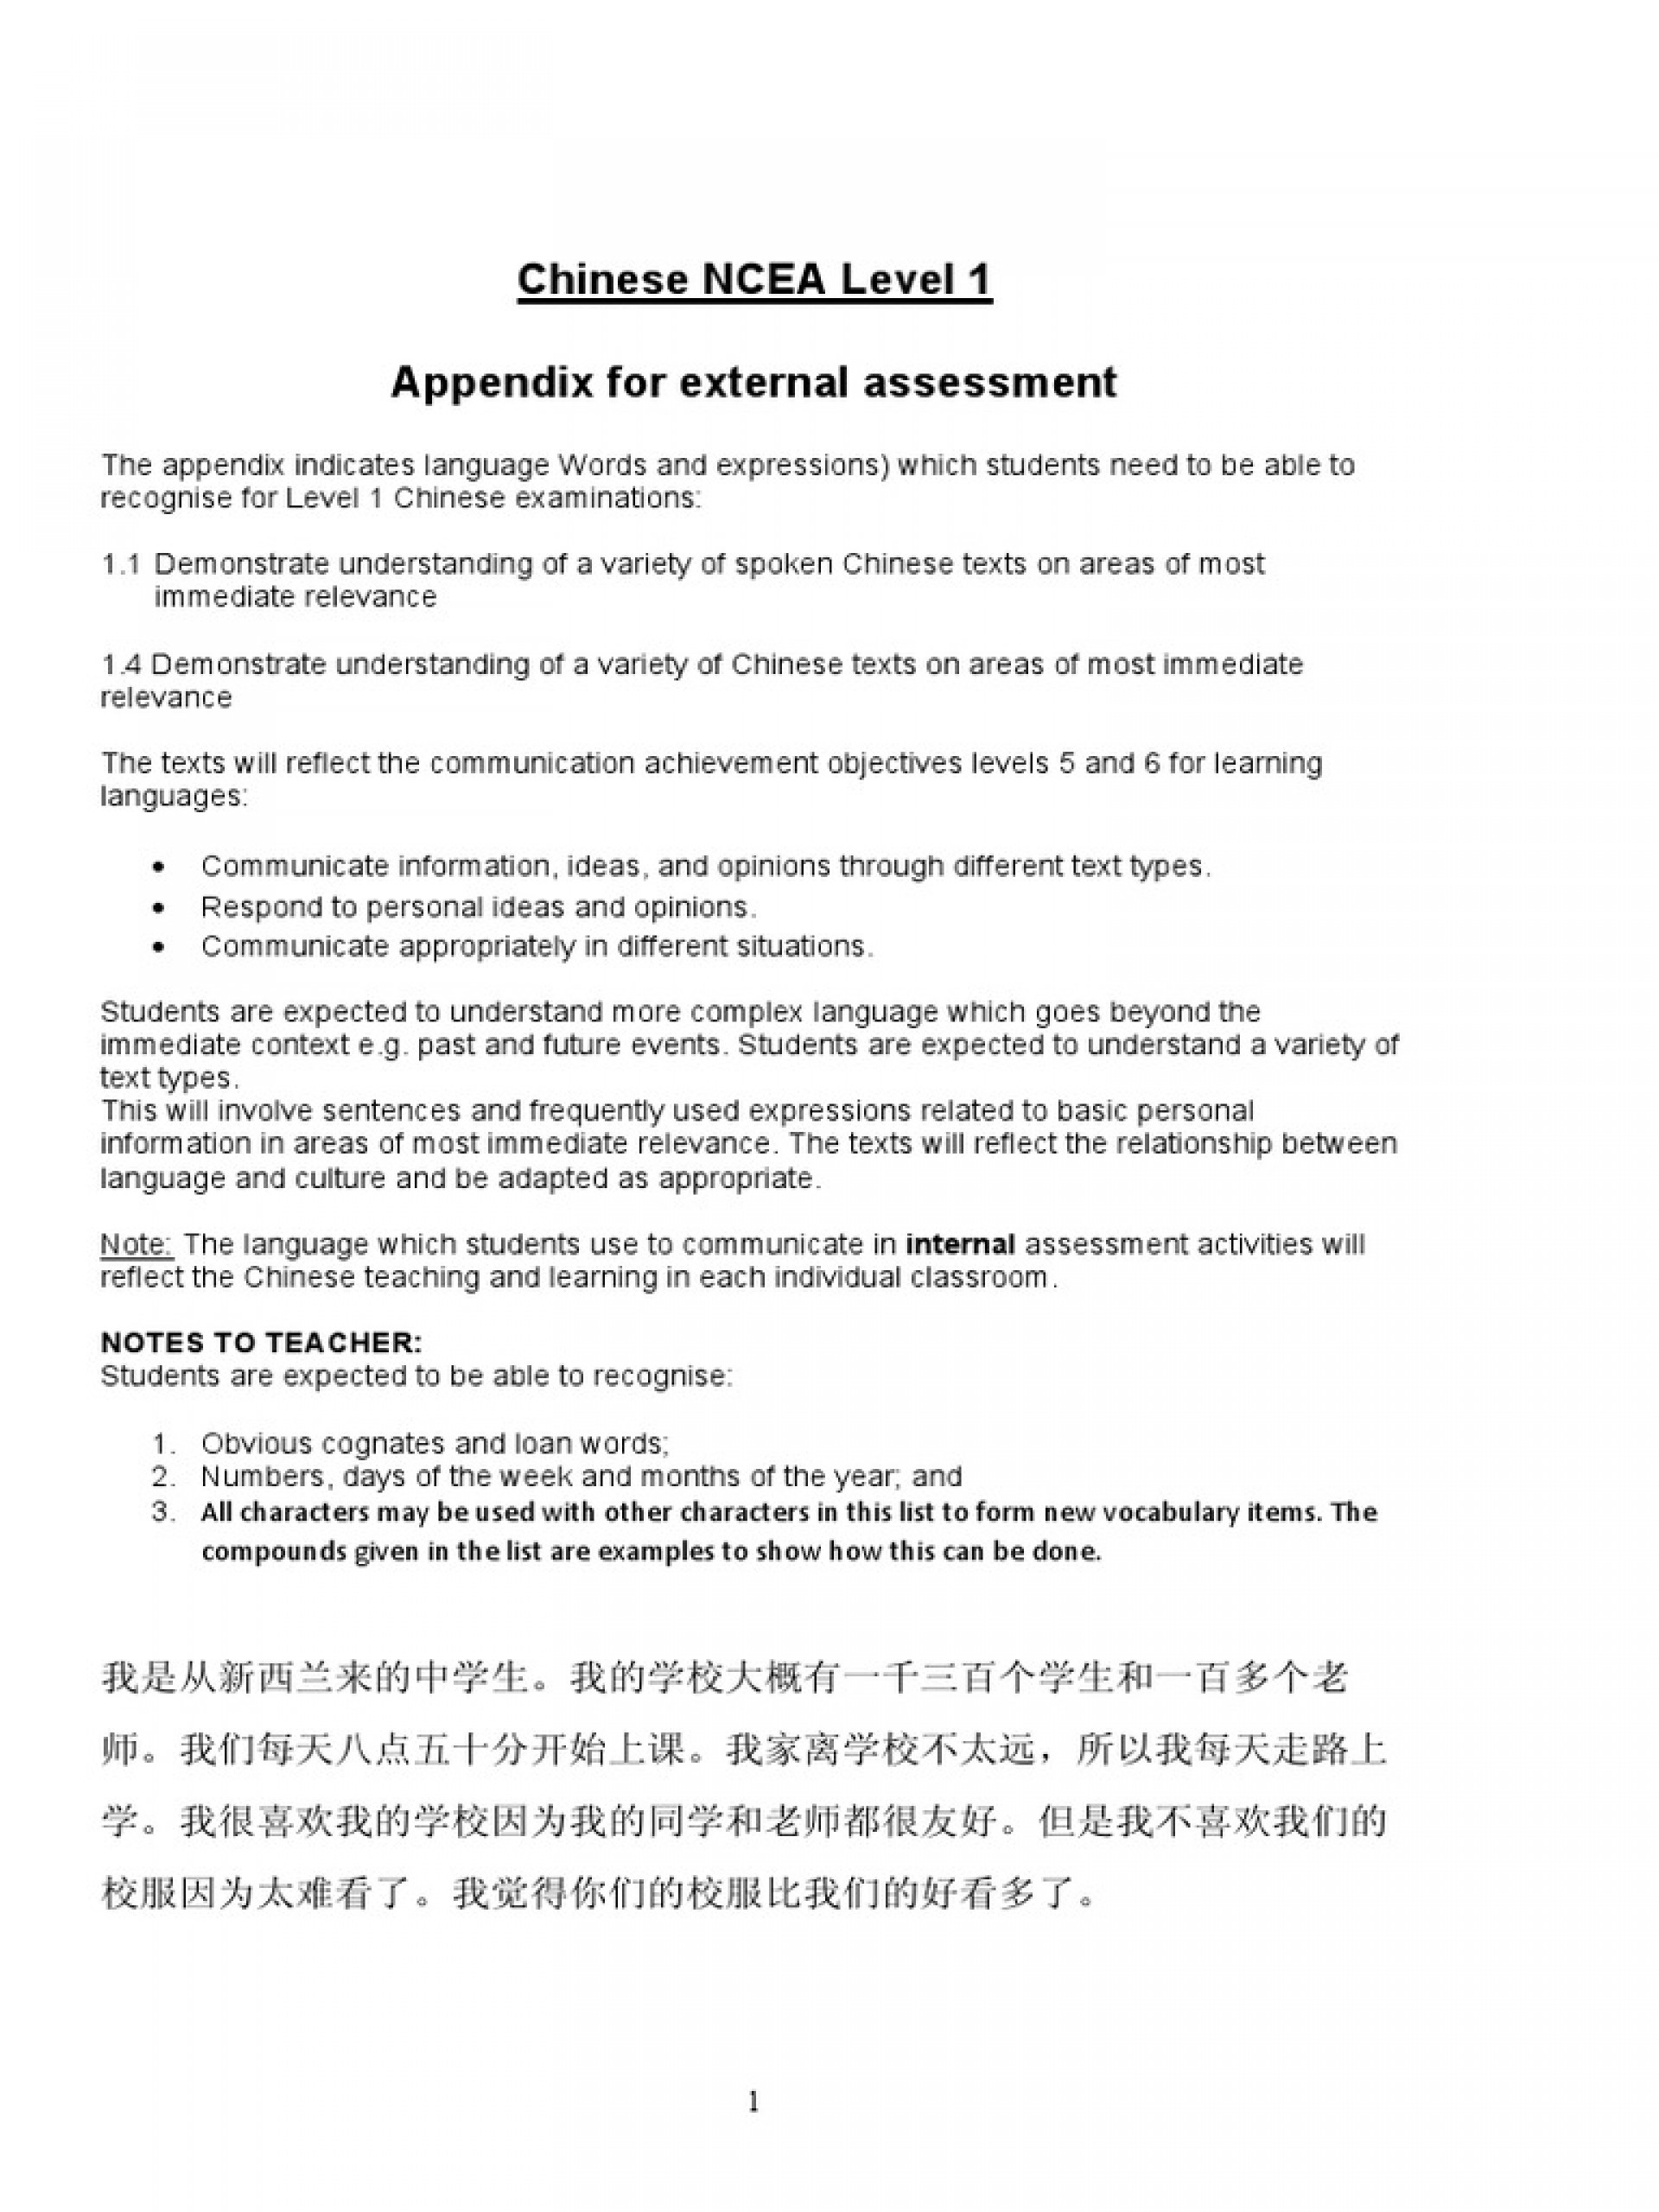 009 Essay Example George Washington Chinese Vocab Ncea Level 1 575ee370b6d87ff9888b4638 Impressive Prompt University Essays That Worked Junior Cert 1920